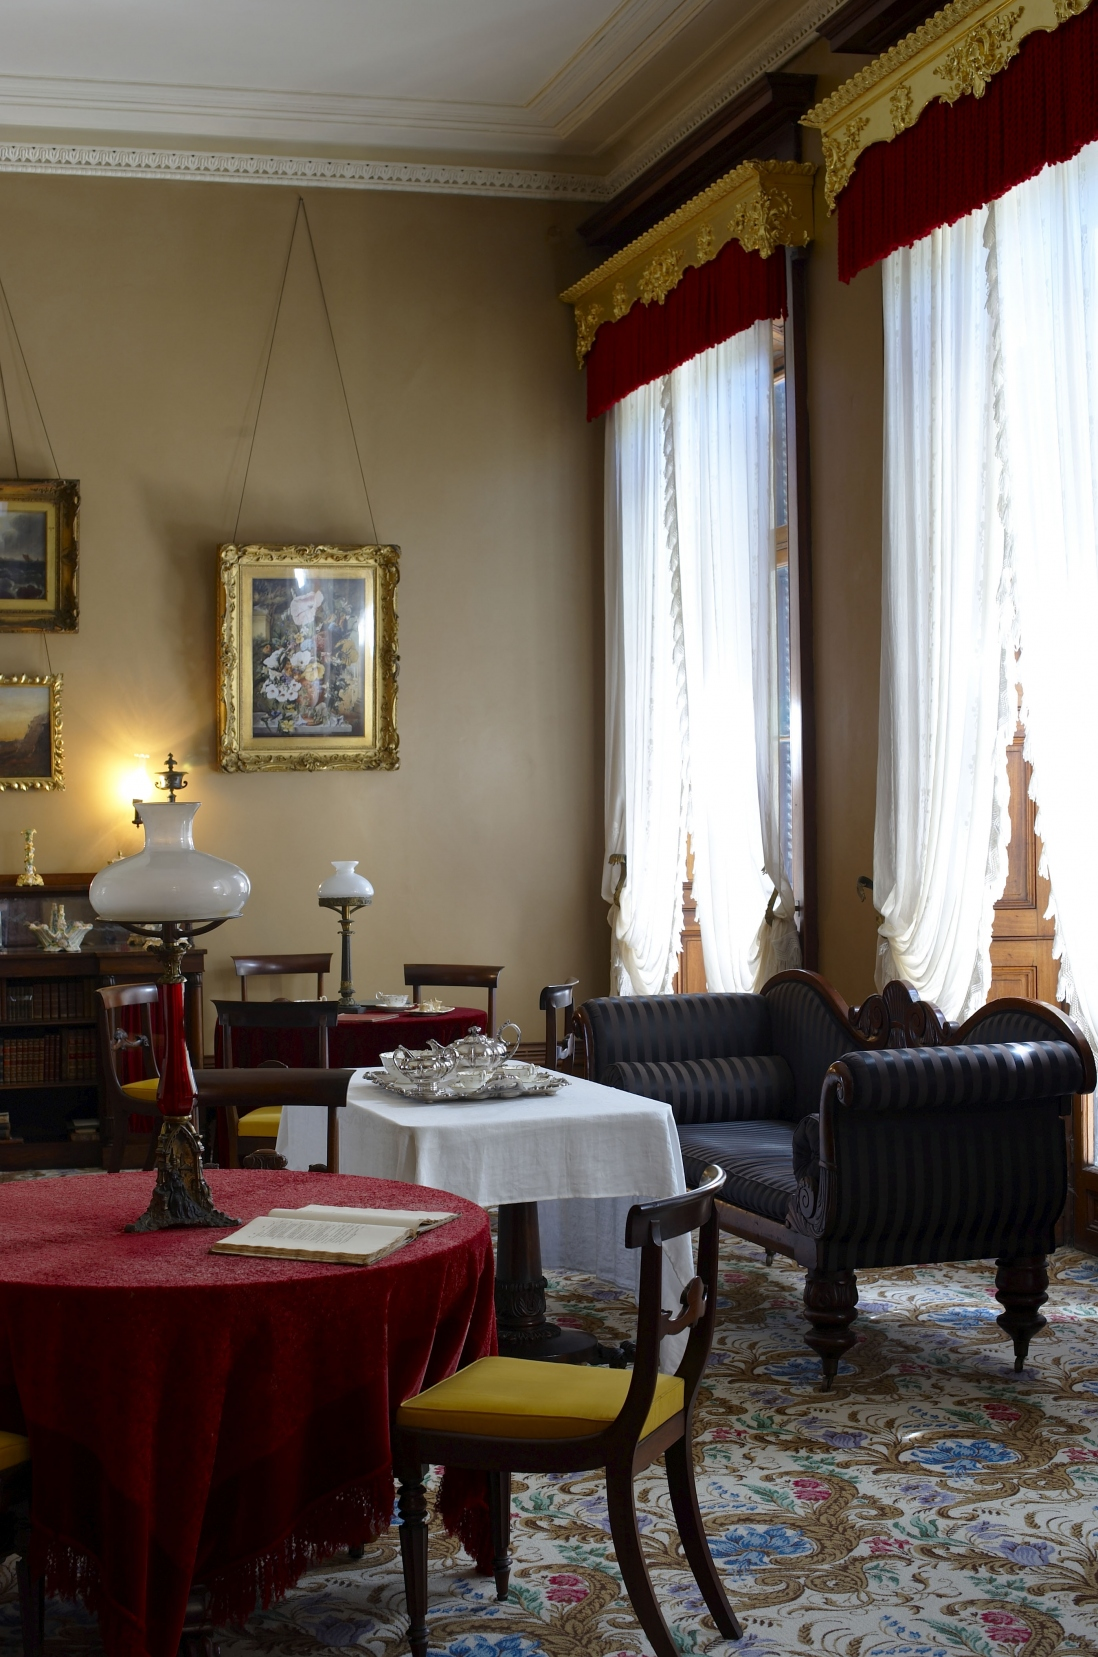 View of richly furnished room with tables, sofas, table lamps, gilt framed pictures, tall sunlit windows and curtains.